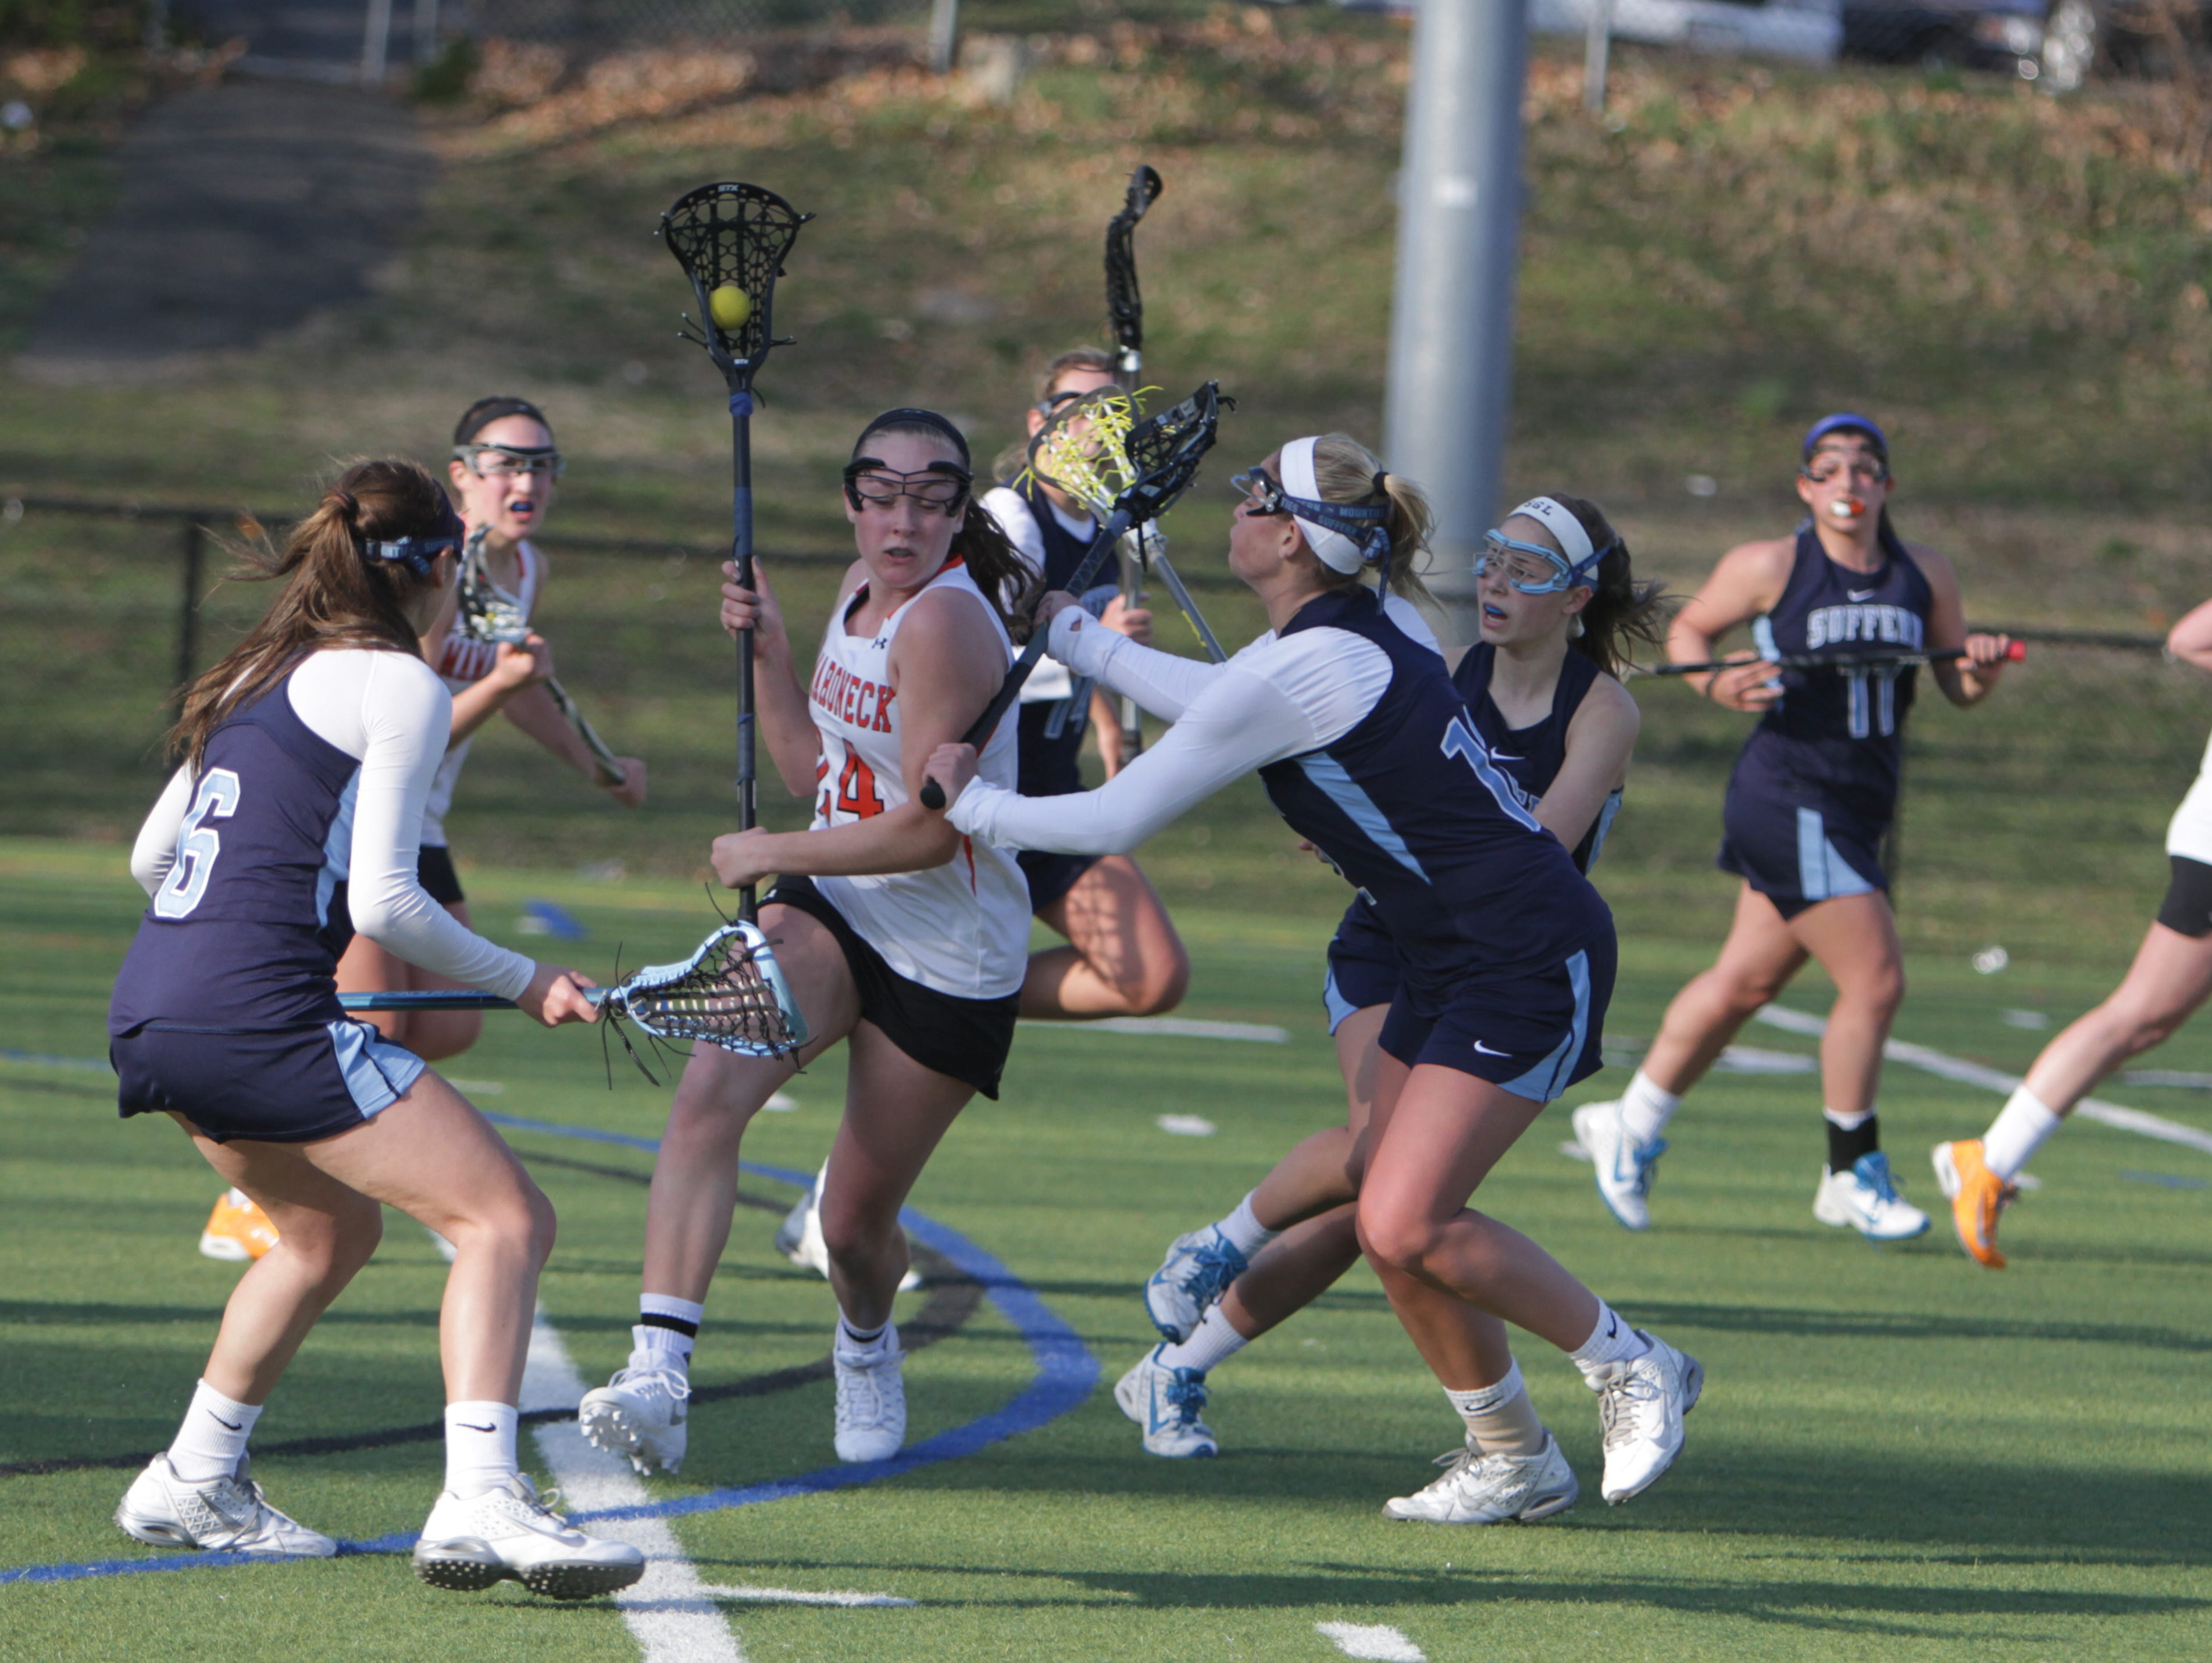 Game action during a Section 1 girls lacrosse game between Suffern and Mamaroneck at Mamaroneck High School on Tuesday, March 22nd, 2016. Suffern won 16-3.